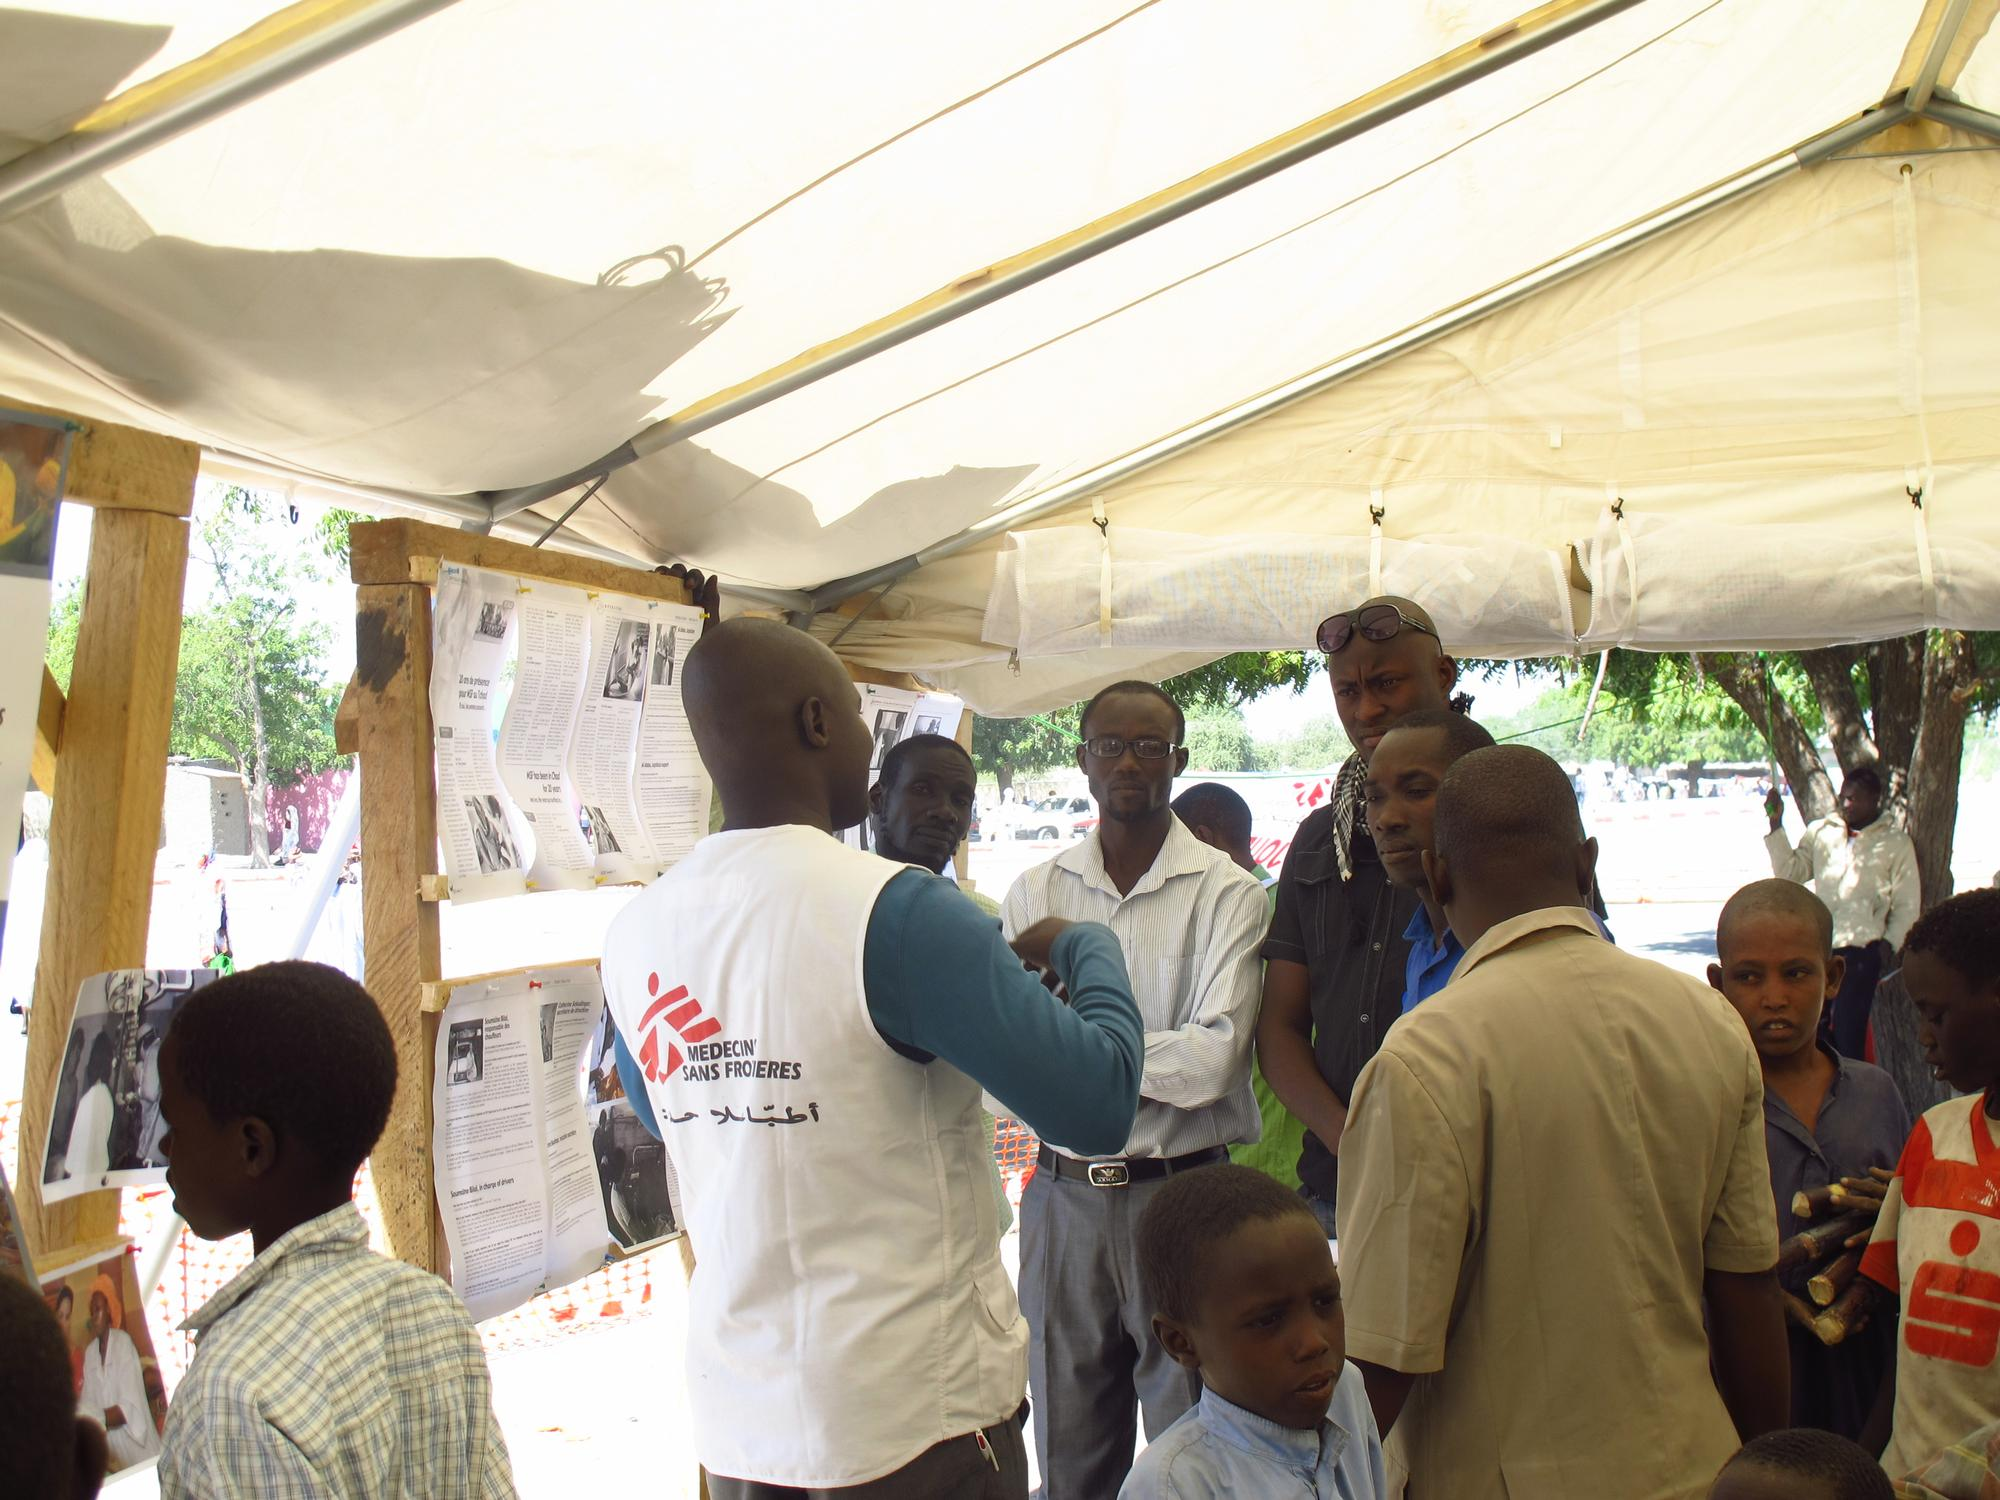 A Doctors Without Borders staff member at a local event to commemorate 30 years of activity in Chad.